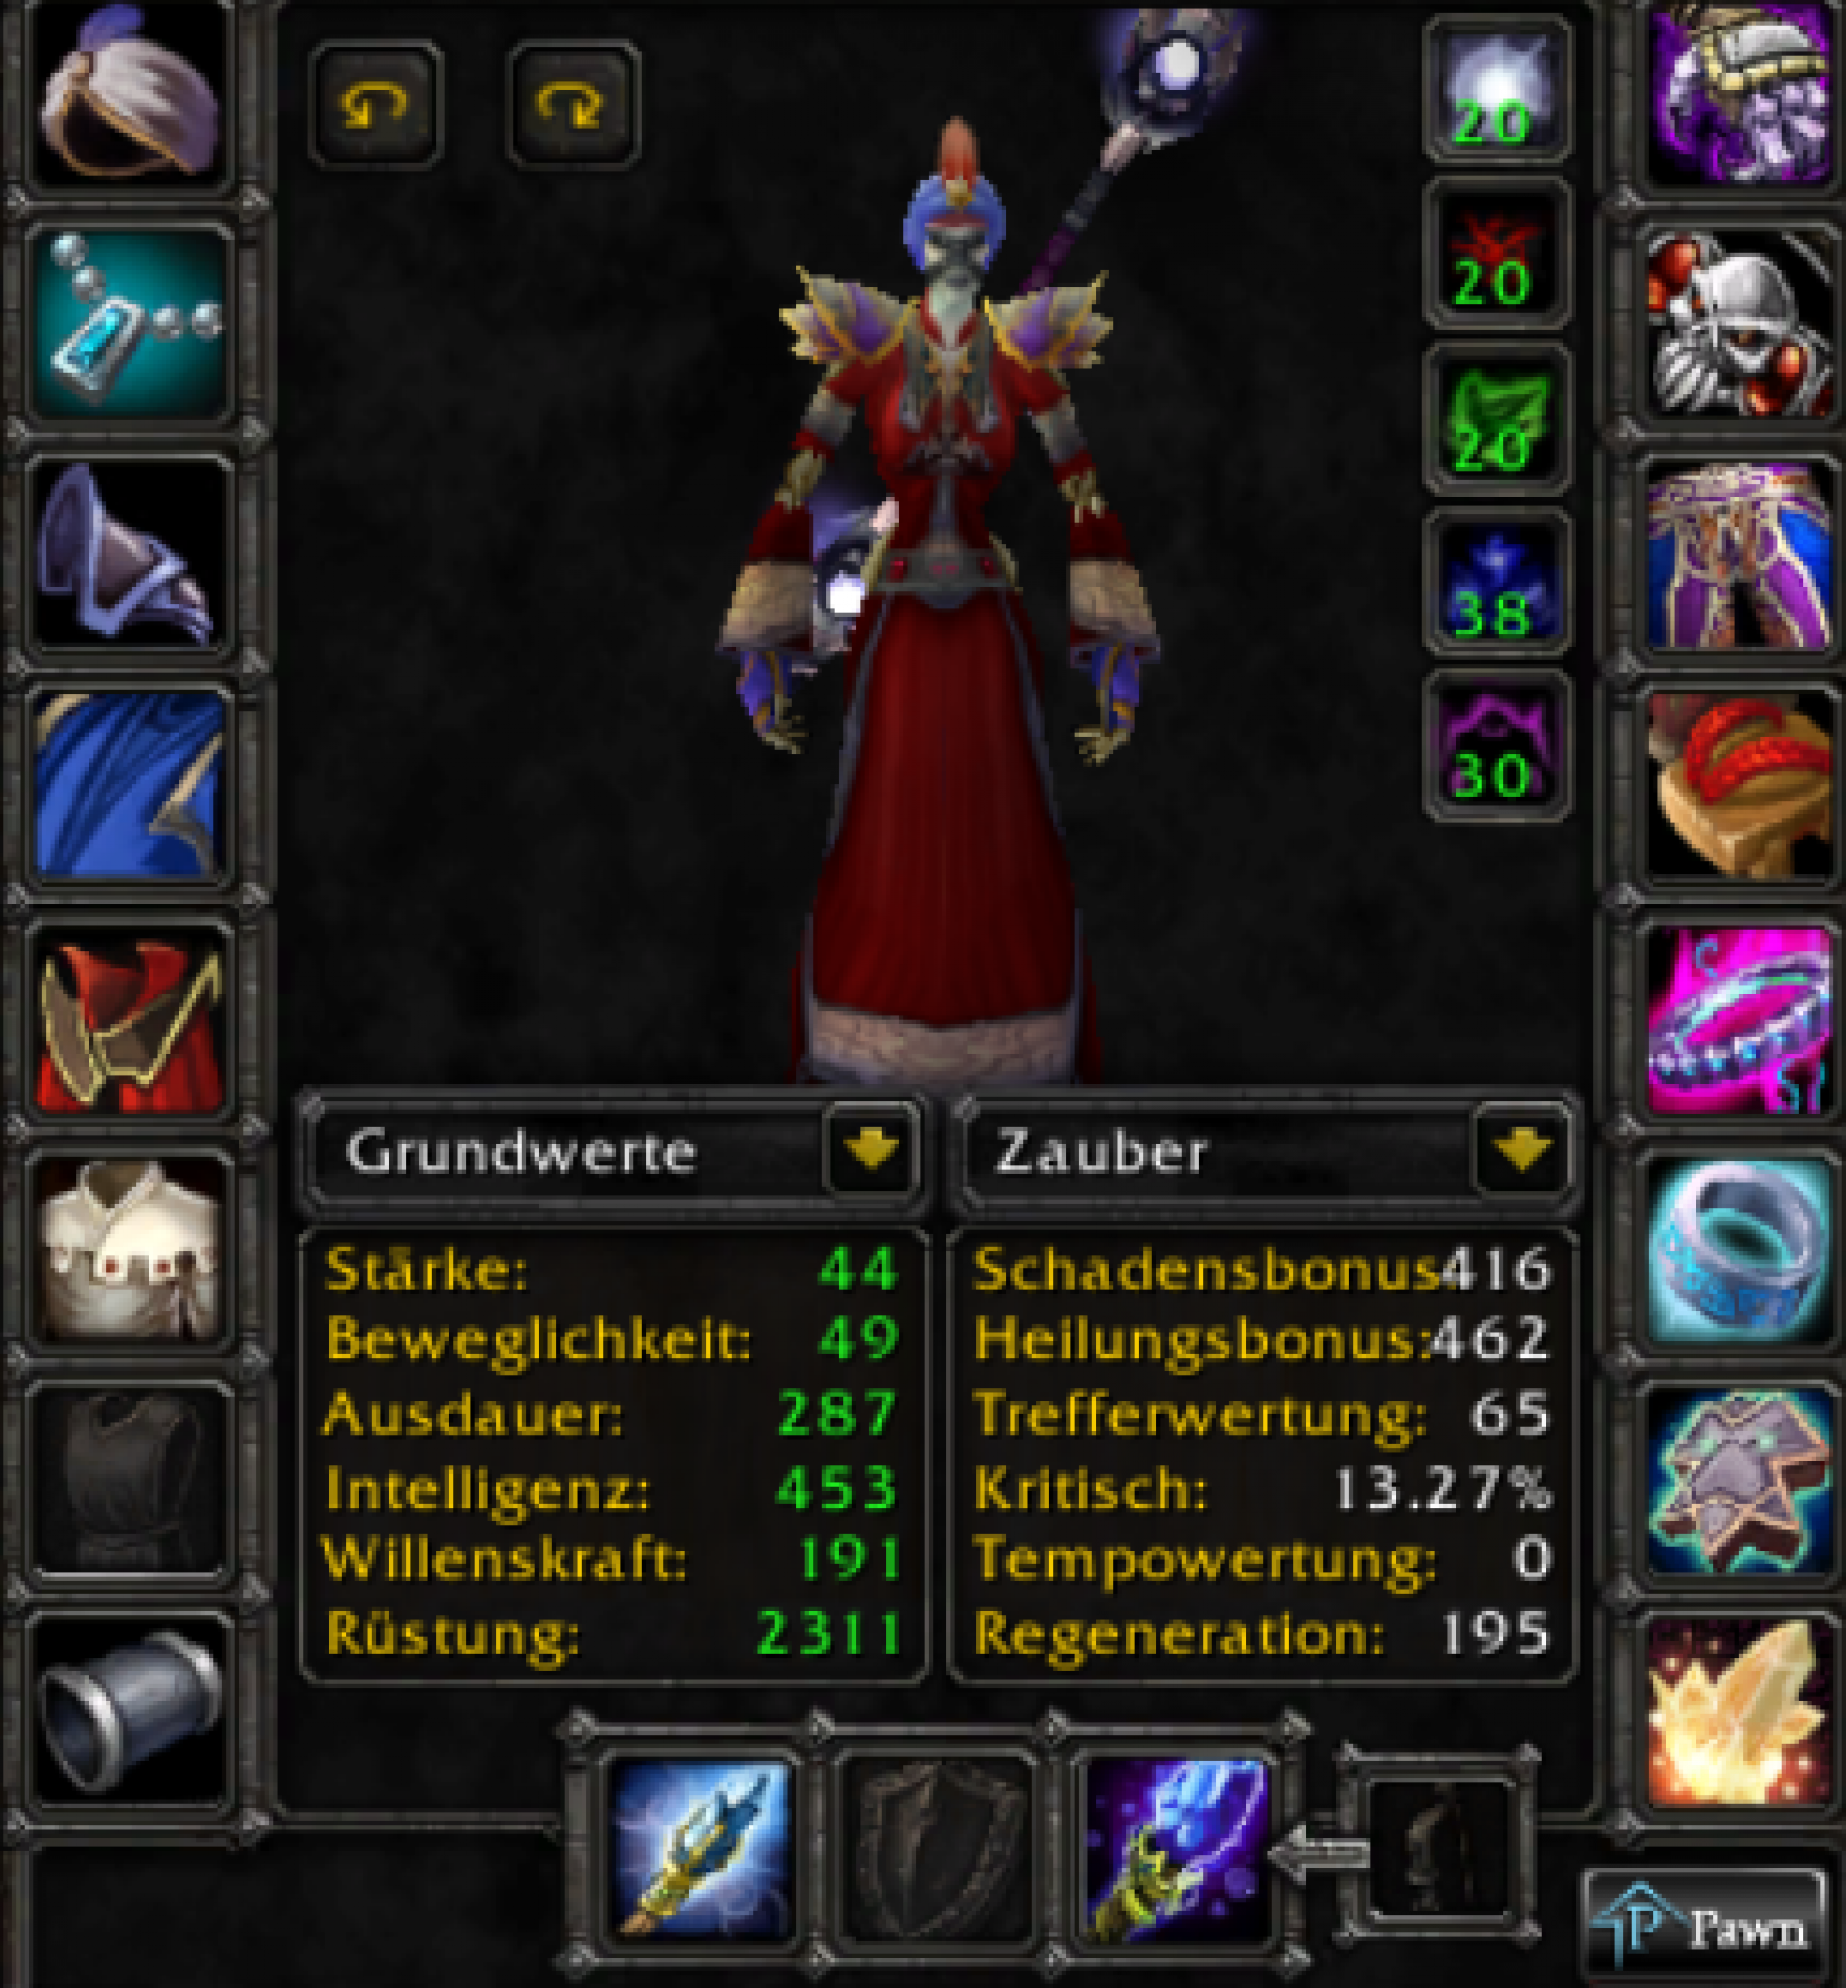 Undead female mage lucifron